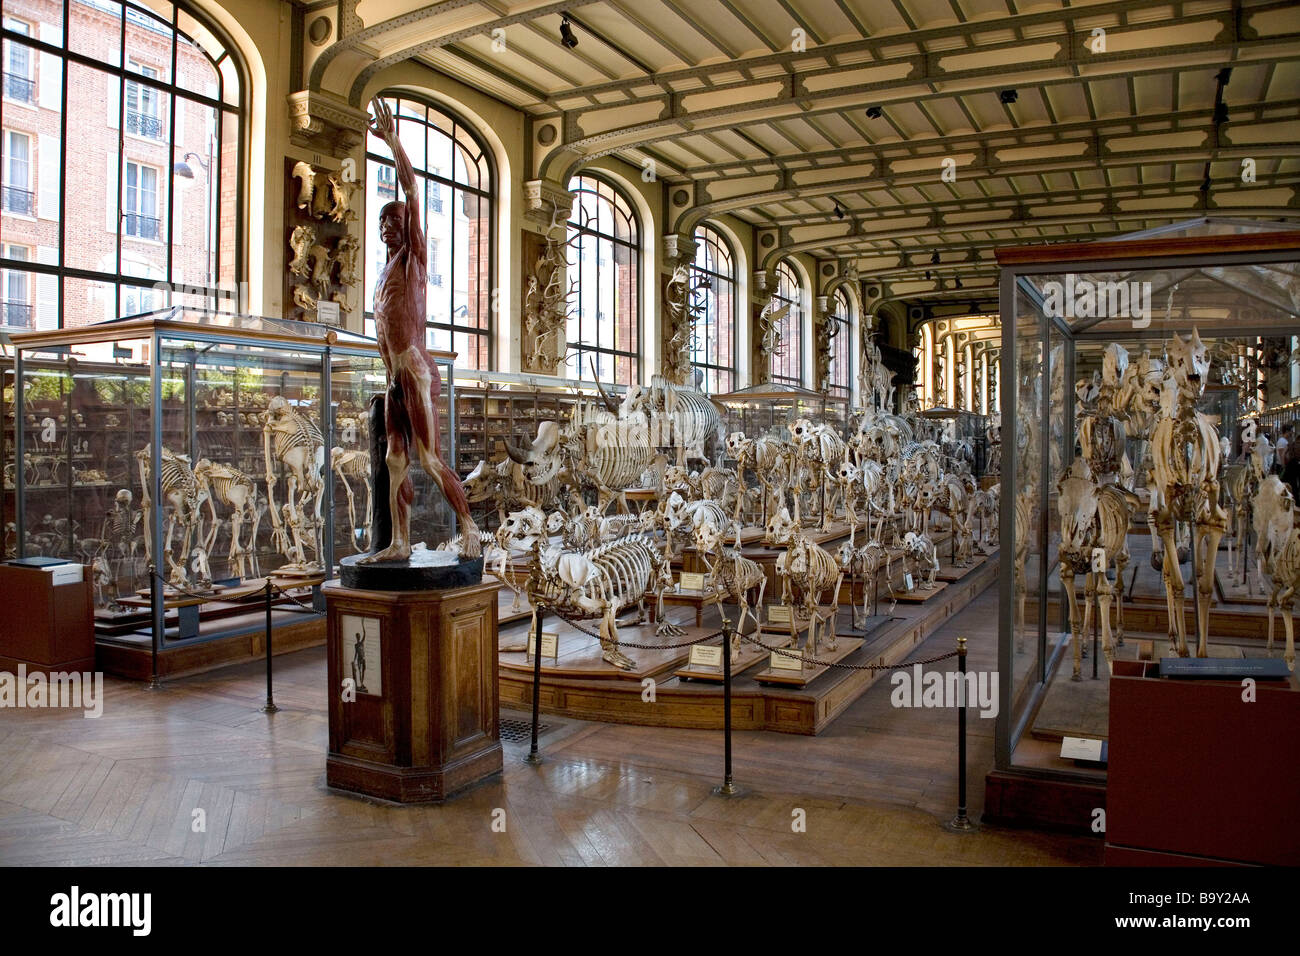 Museum of Natural History in Paris, France - Stock Image